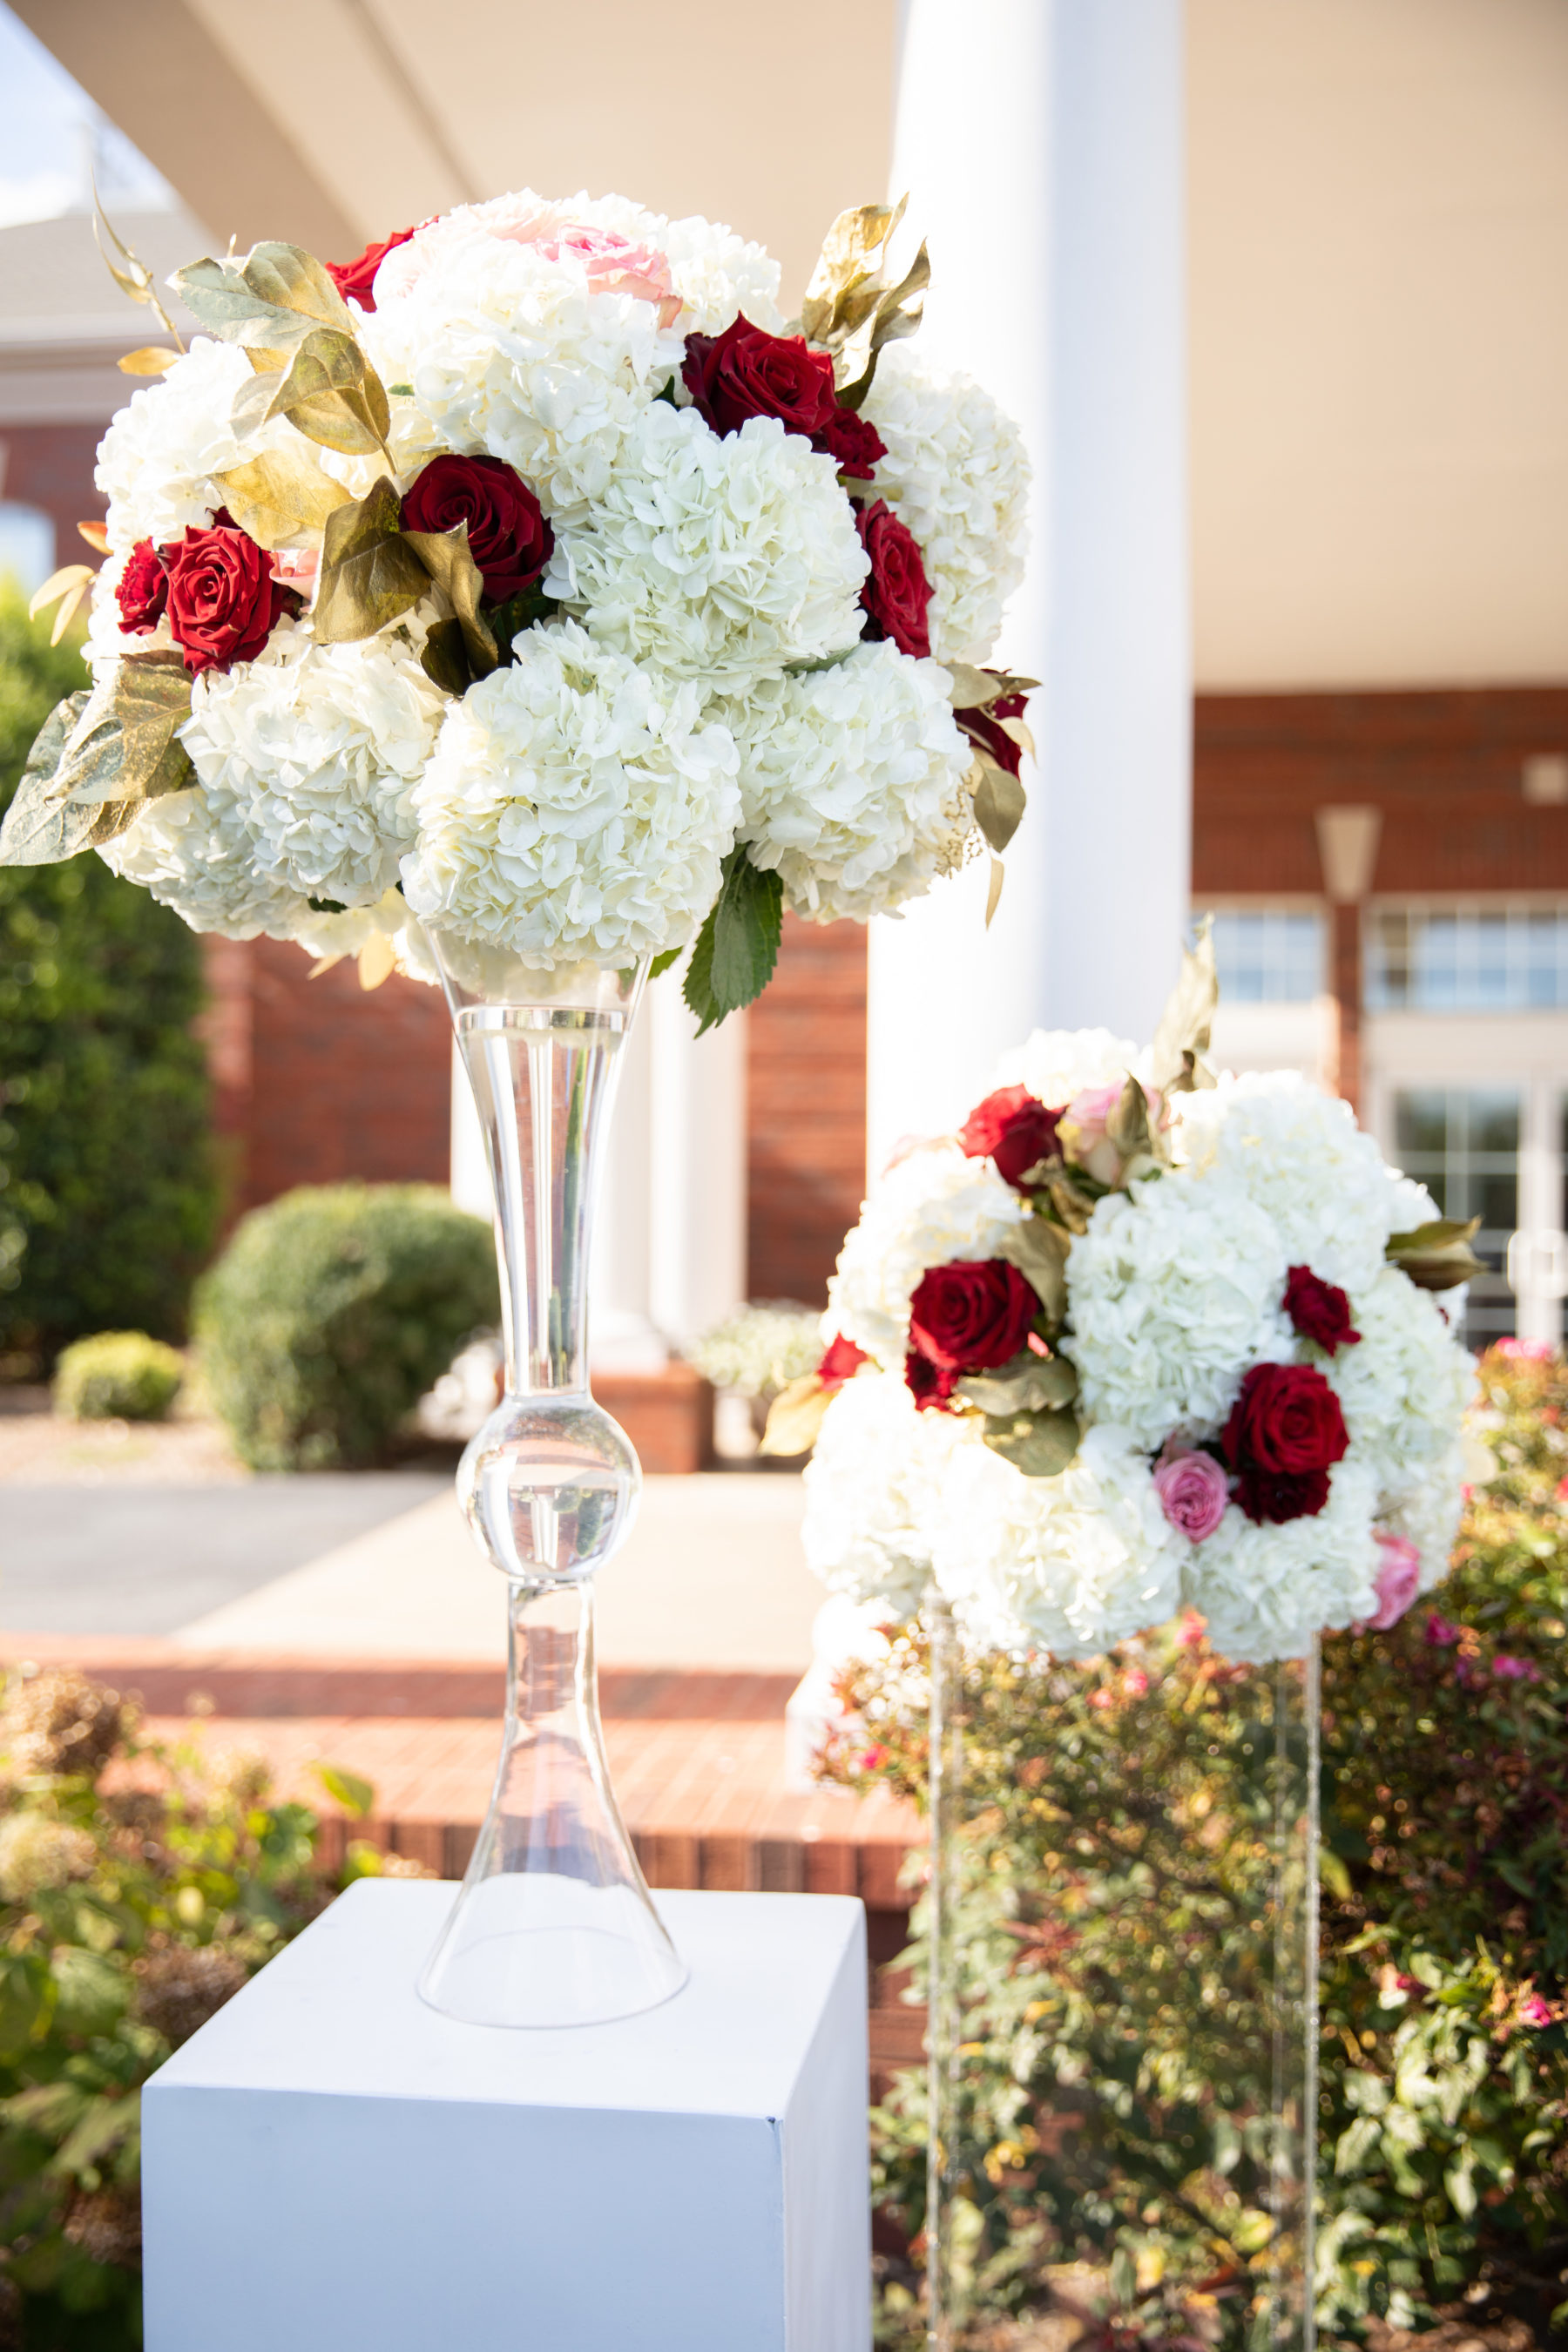 White and red wedding ceremony flowers: Luxurious Stone Rivers Country Club Wedding featured on Nashville Bride Guide